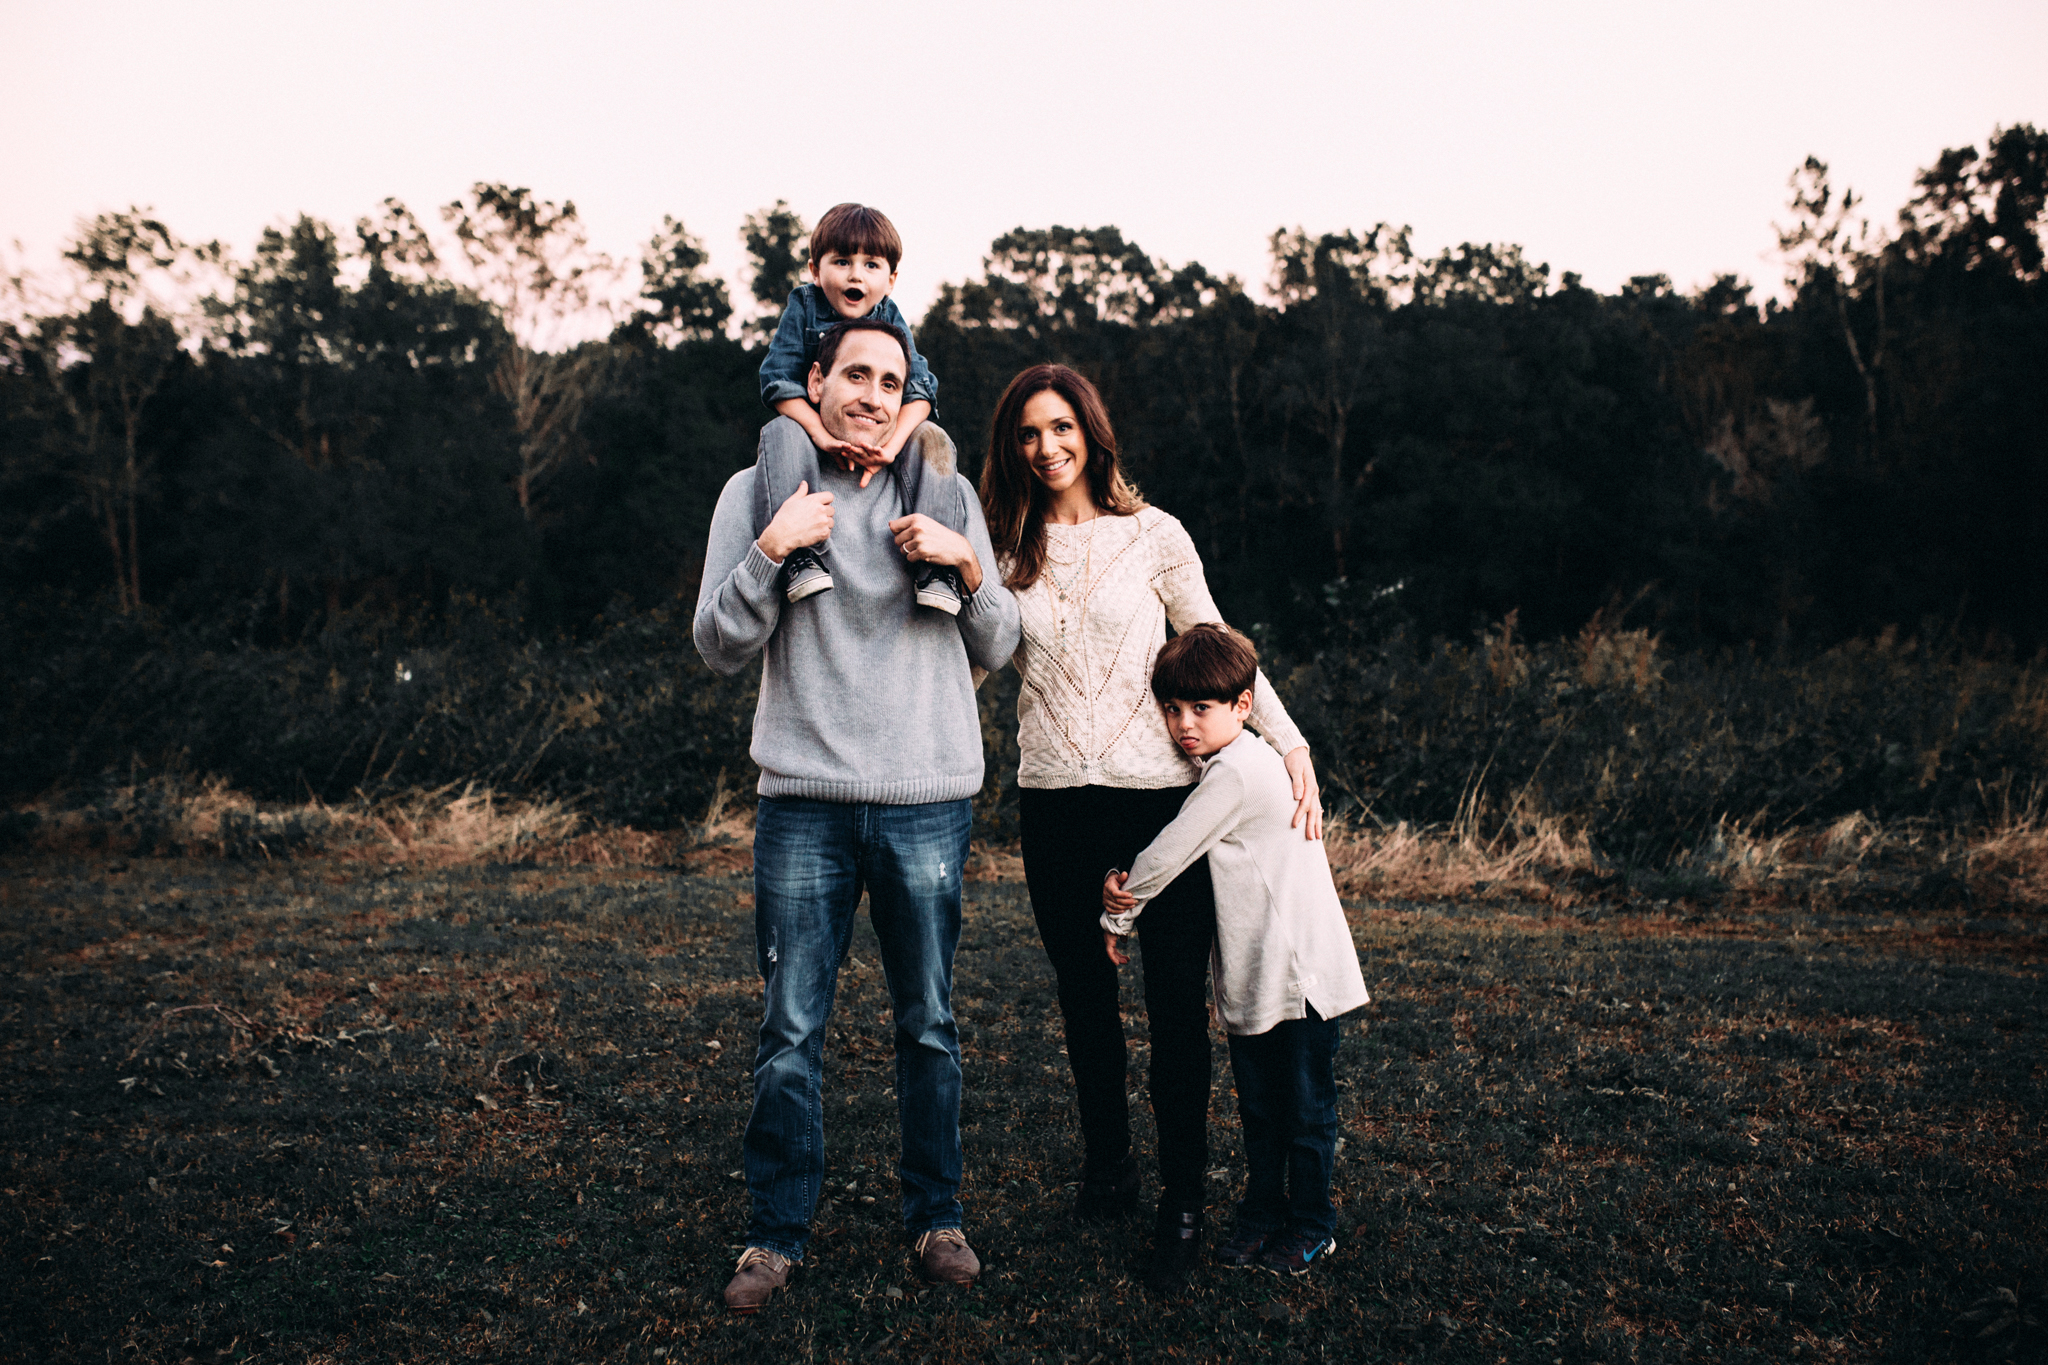 Family photographers in durham nc